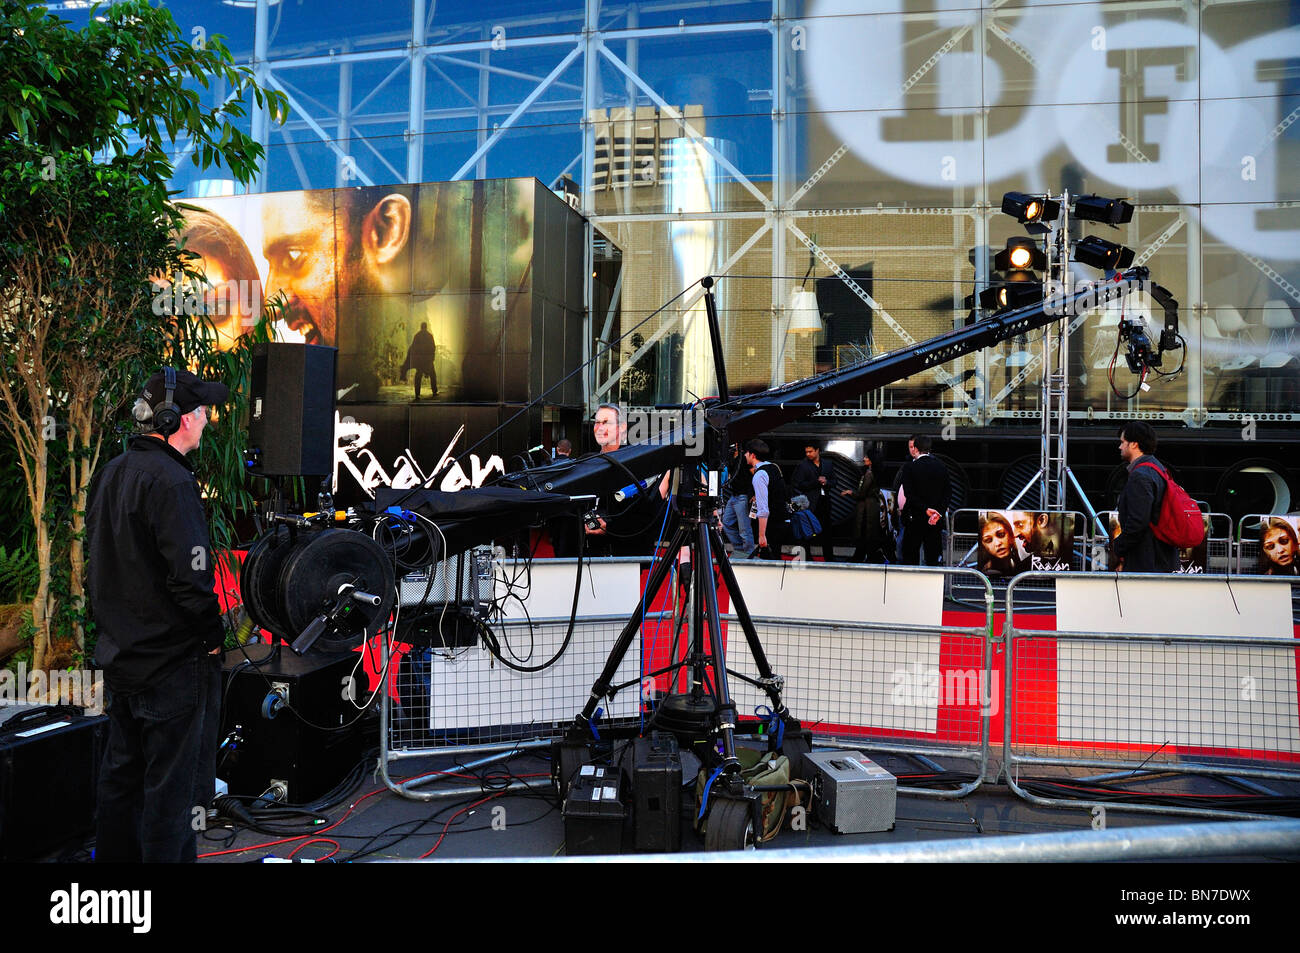 Film Crew with equipment for premier of Raavan at British Film Institute, London - Stock Image